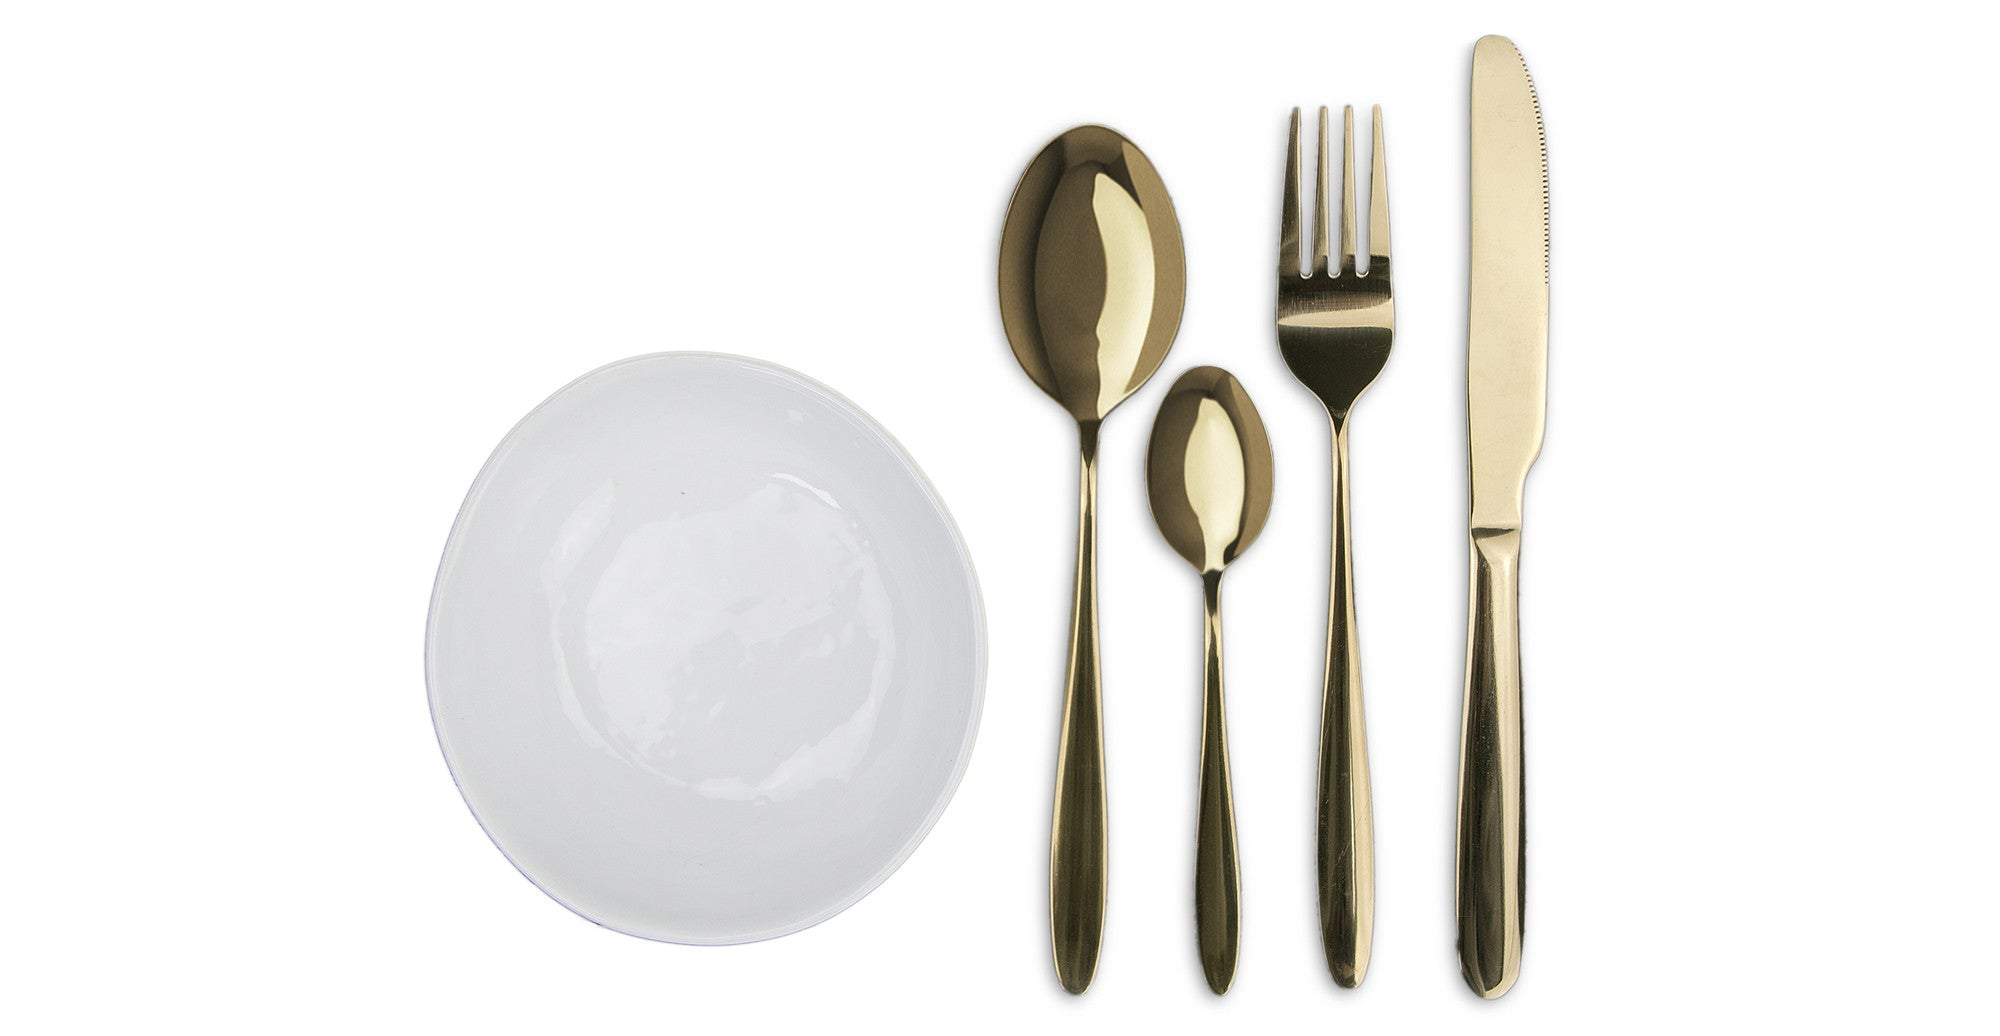 The Golden Cutlery 4 Piece Cutlery Set